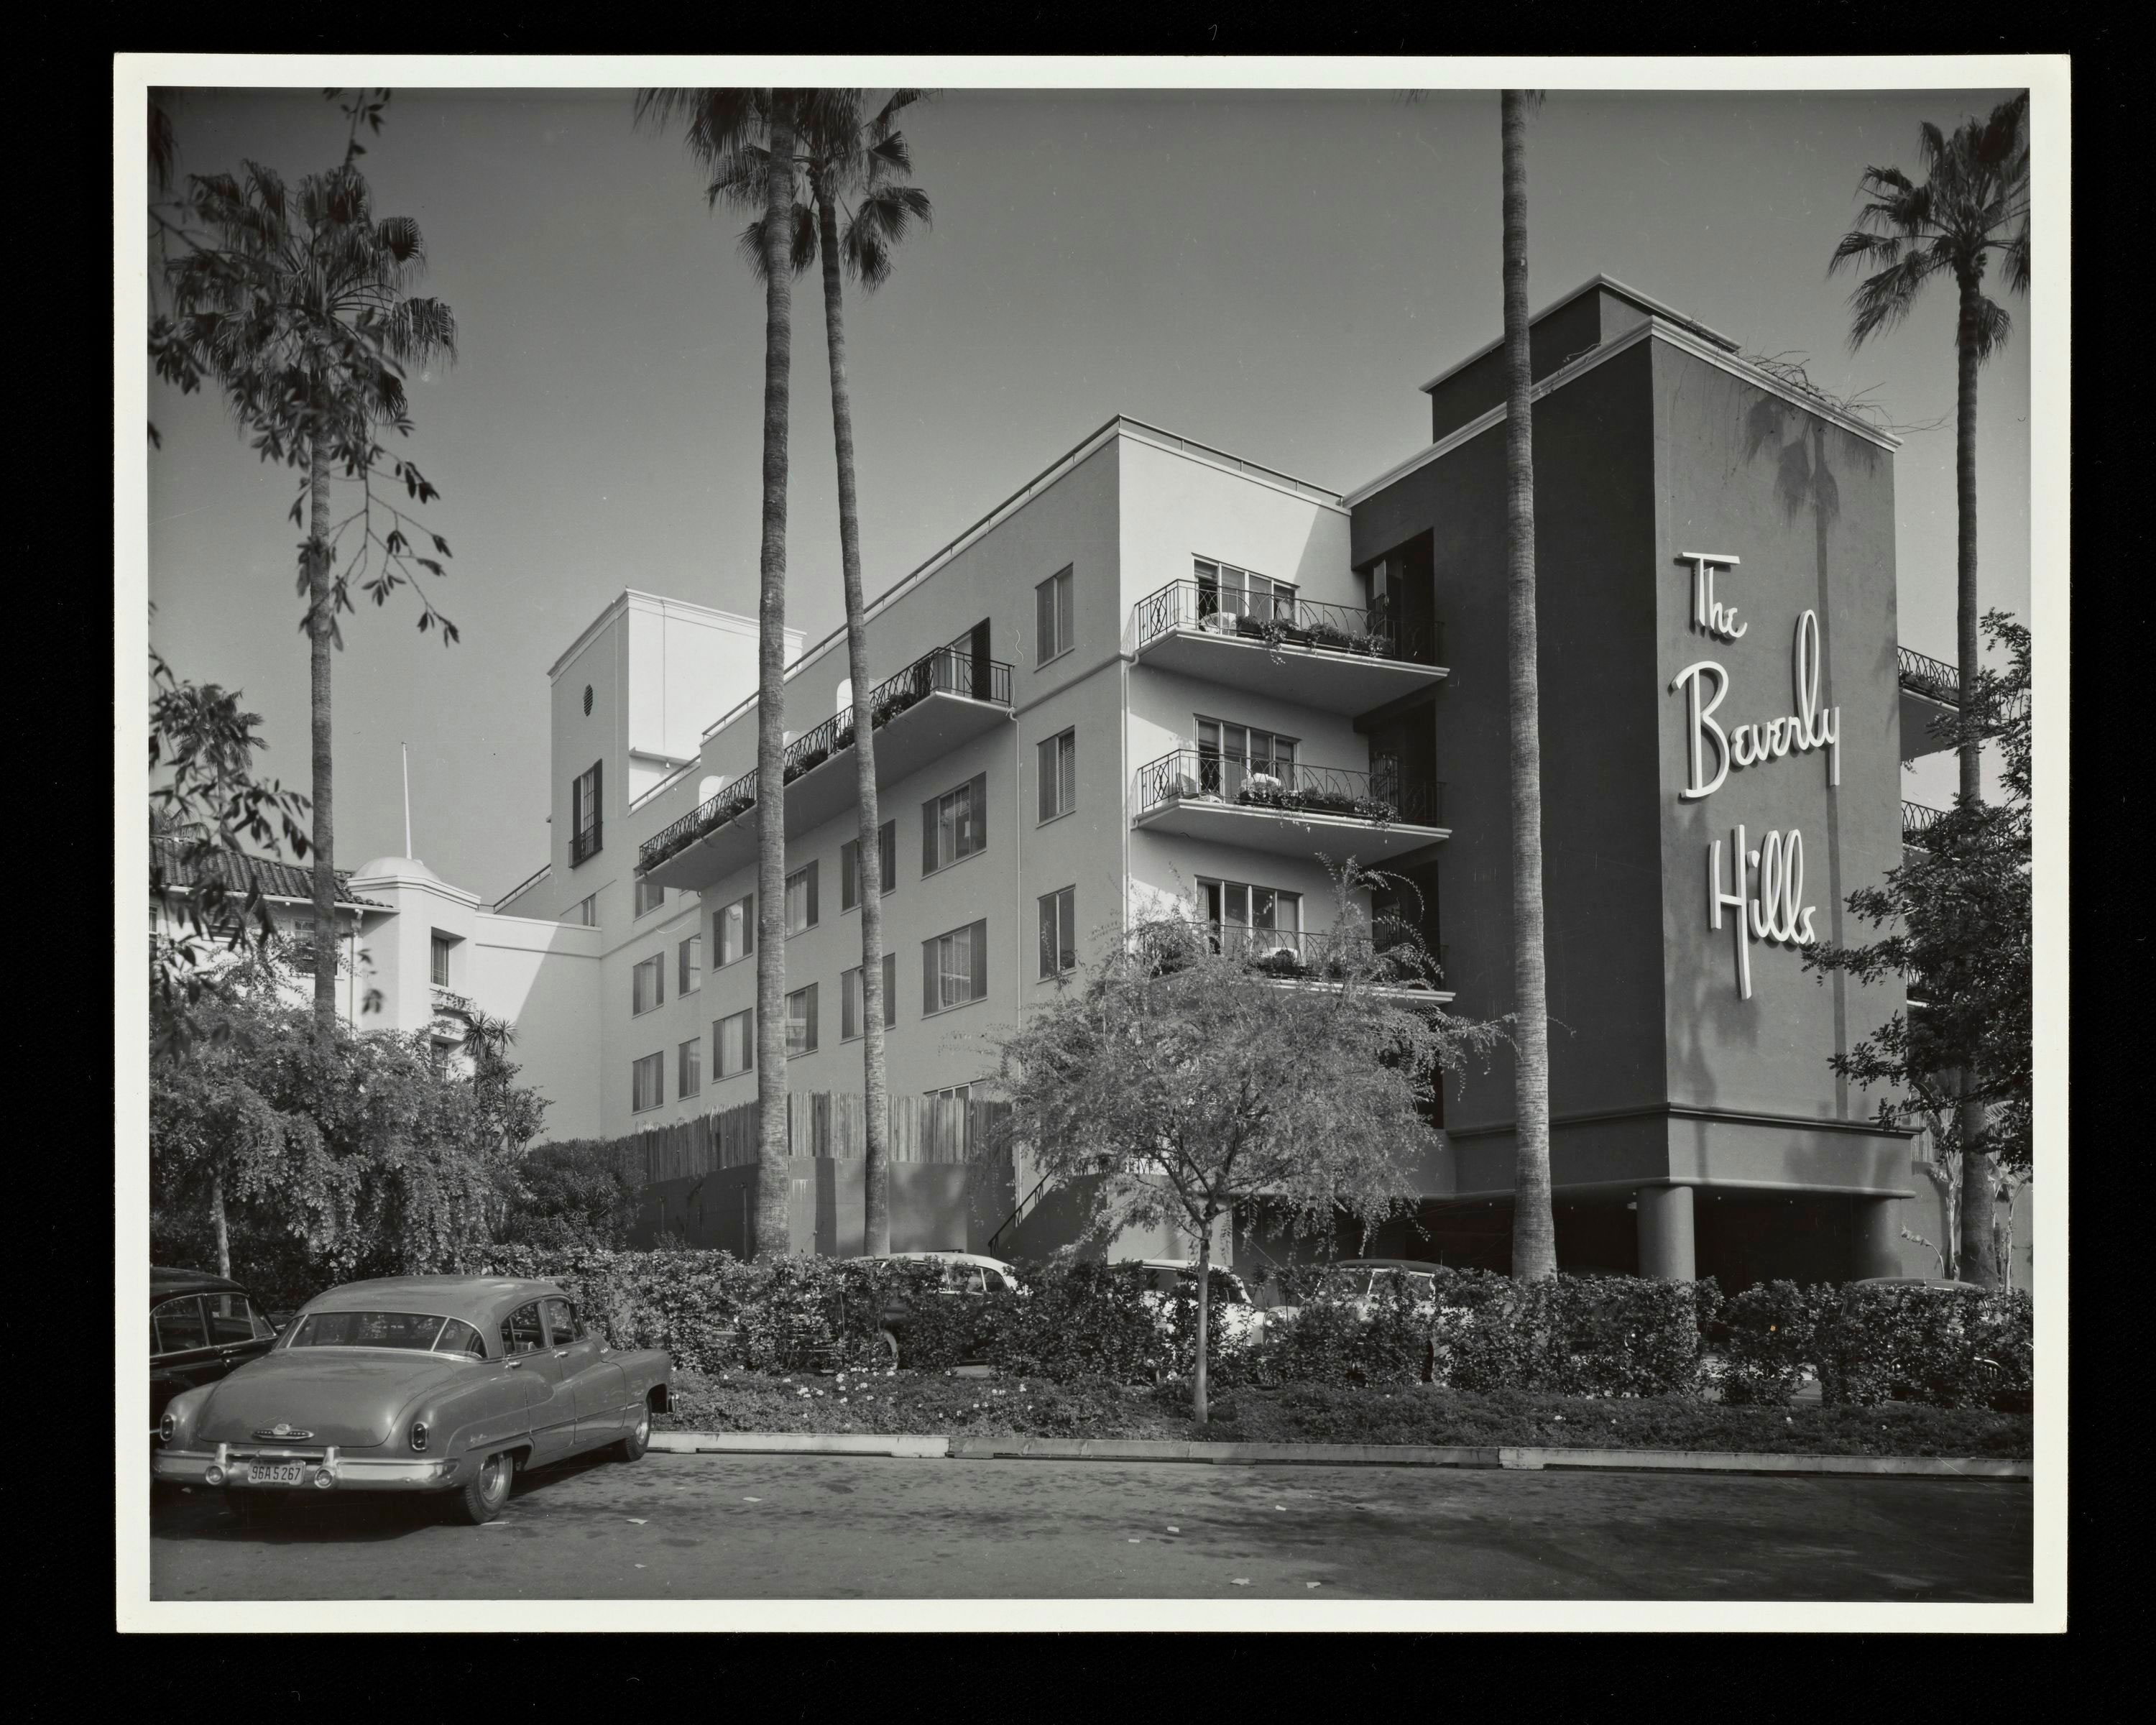 Beverly Hills Hotel Addition, Beverly Hills, Paul R. Williams architect, Built 1949-50, photography by Julius Shulman, 1950, Gelatin Silver Print, © J. Paul Getty Trust. Getty Research Institute, Los Angeles (2004.R.10)